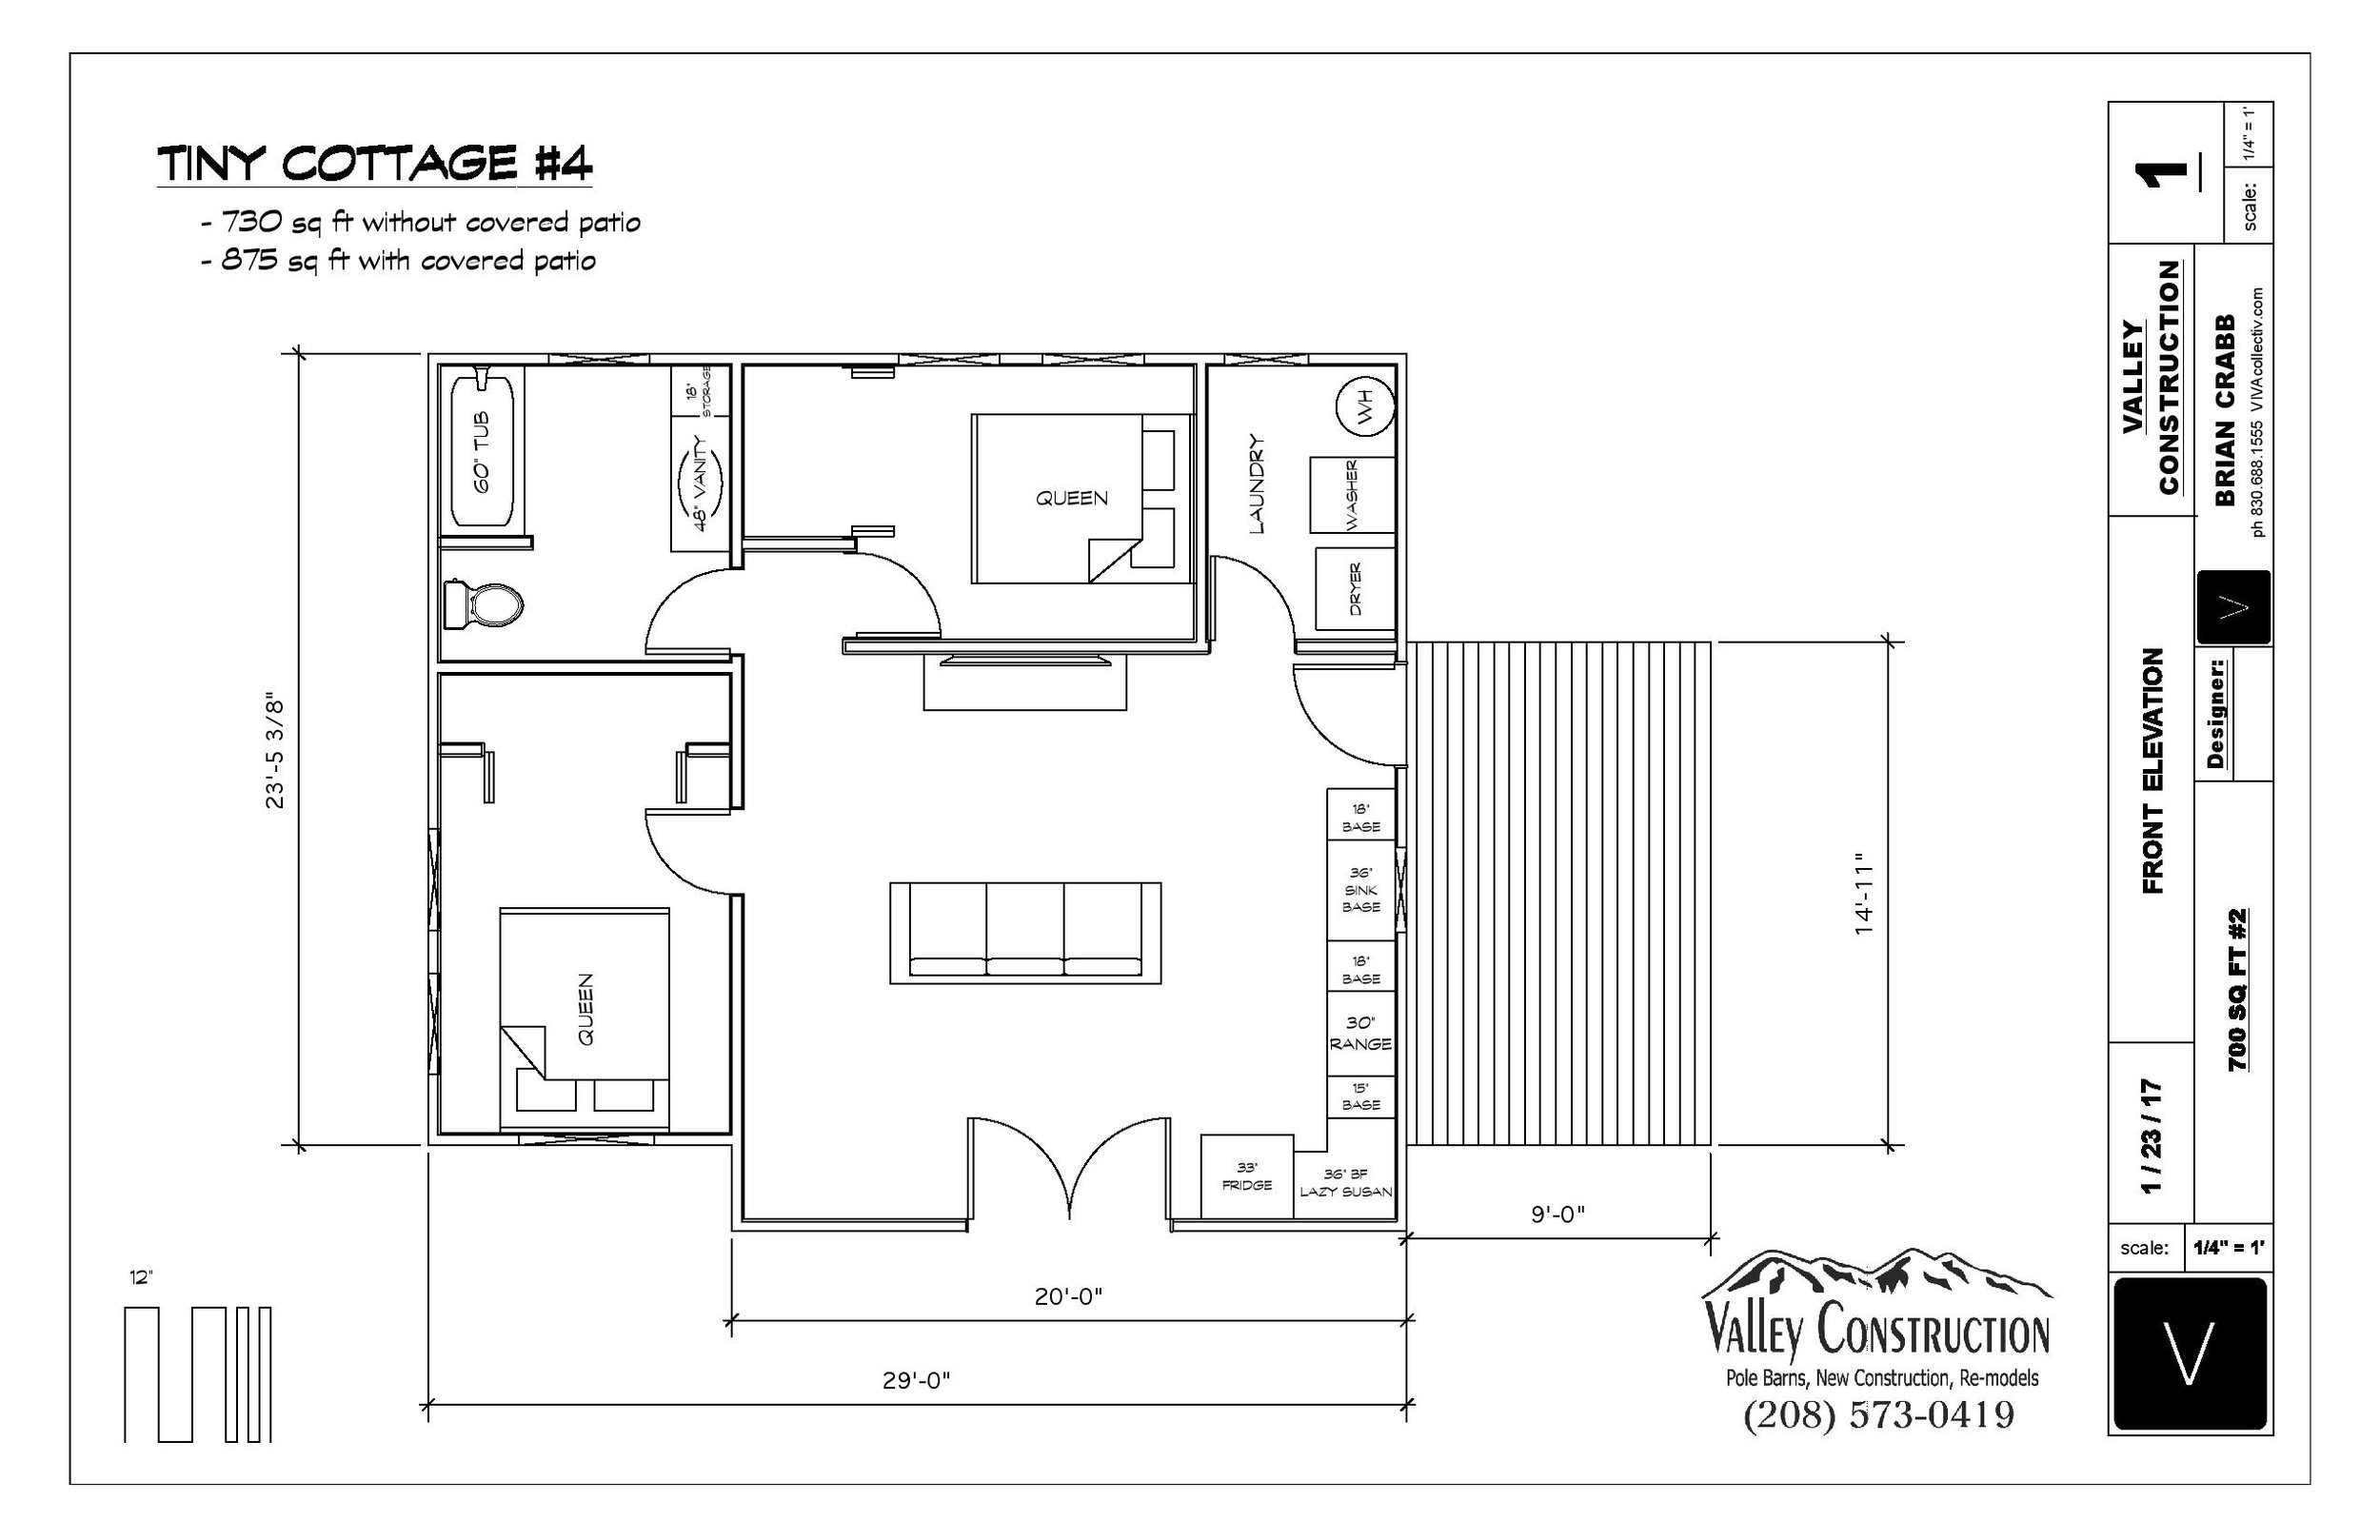 700 SQ FT #2 PACKET (1)-page-002.jpg